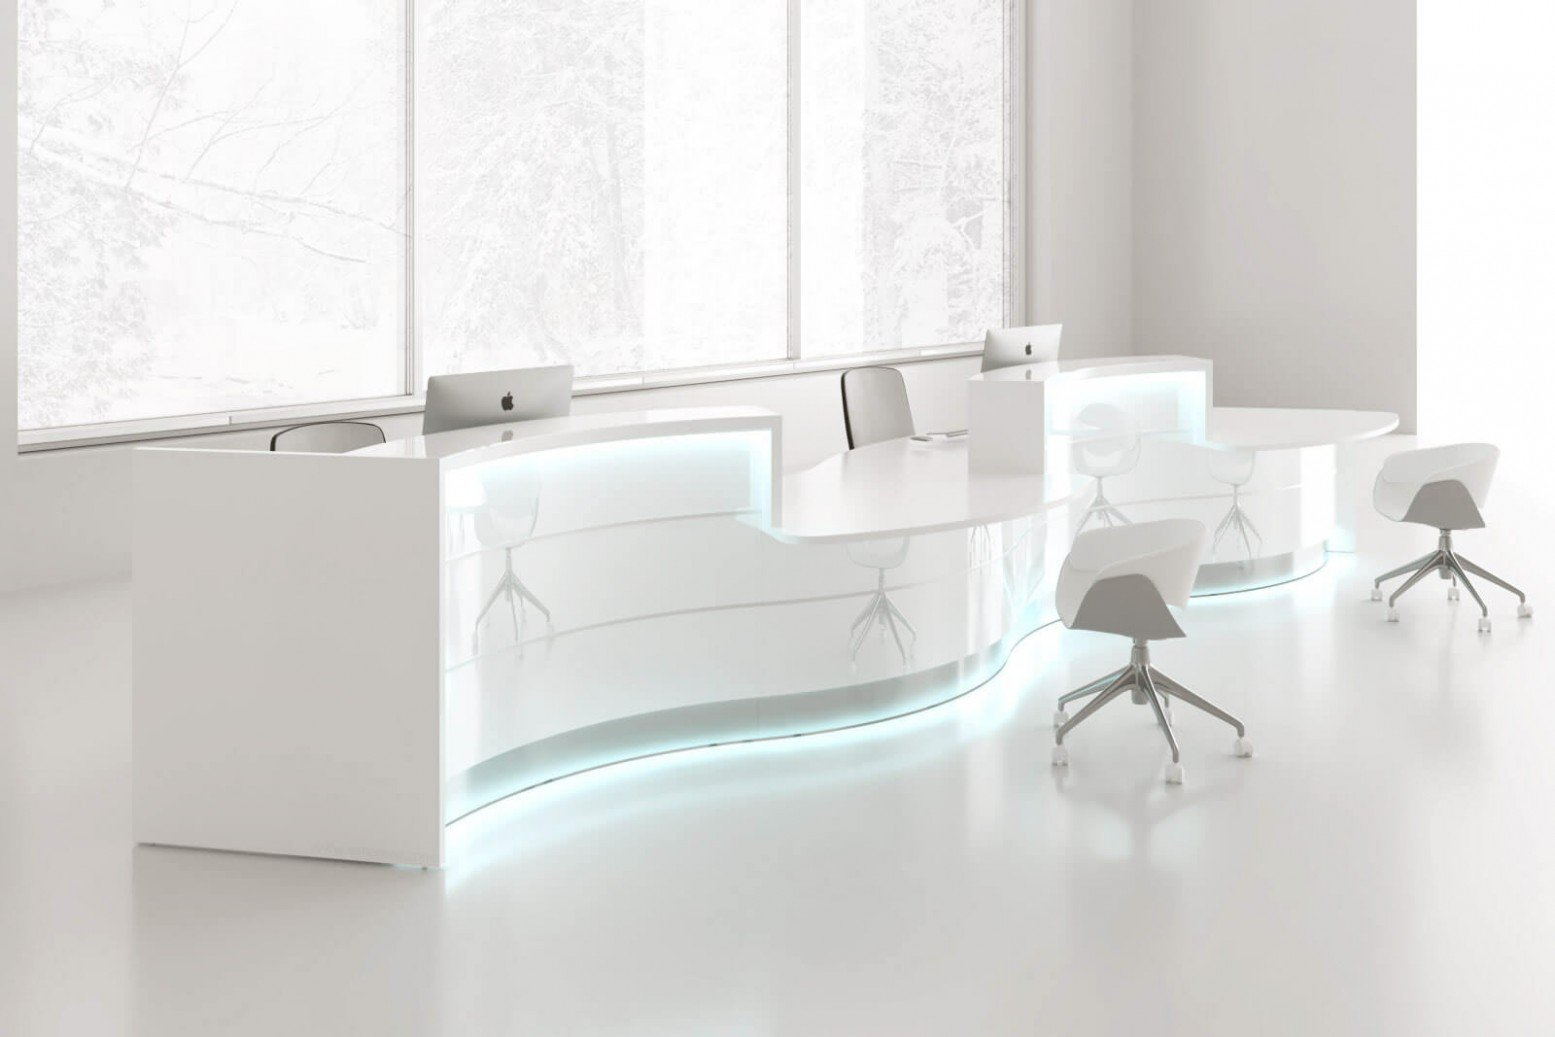 Valde Right 2 Countertops Curved Large Reception Desk